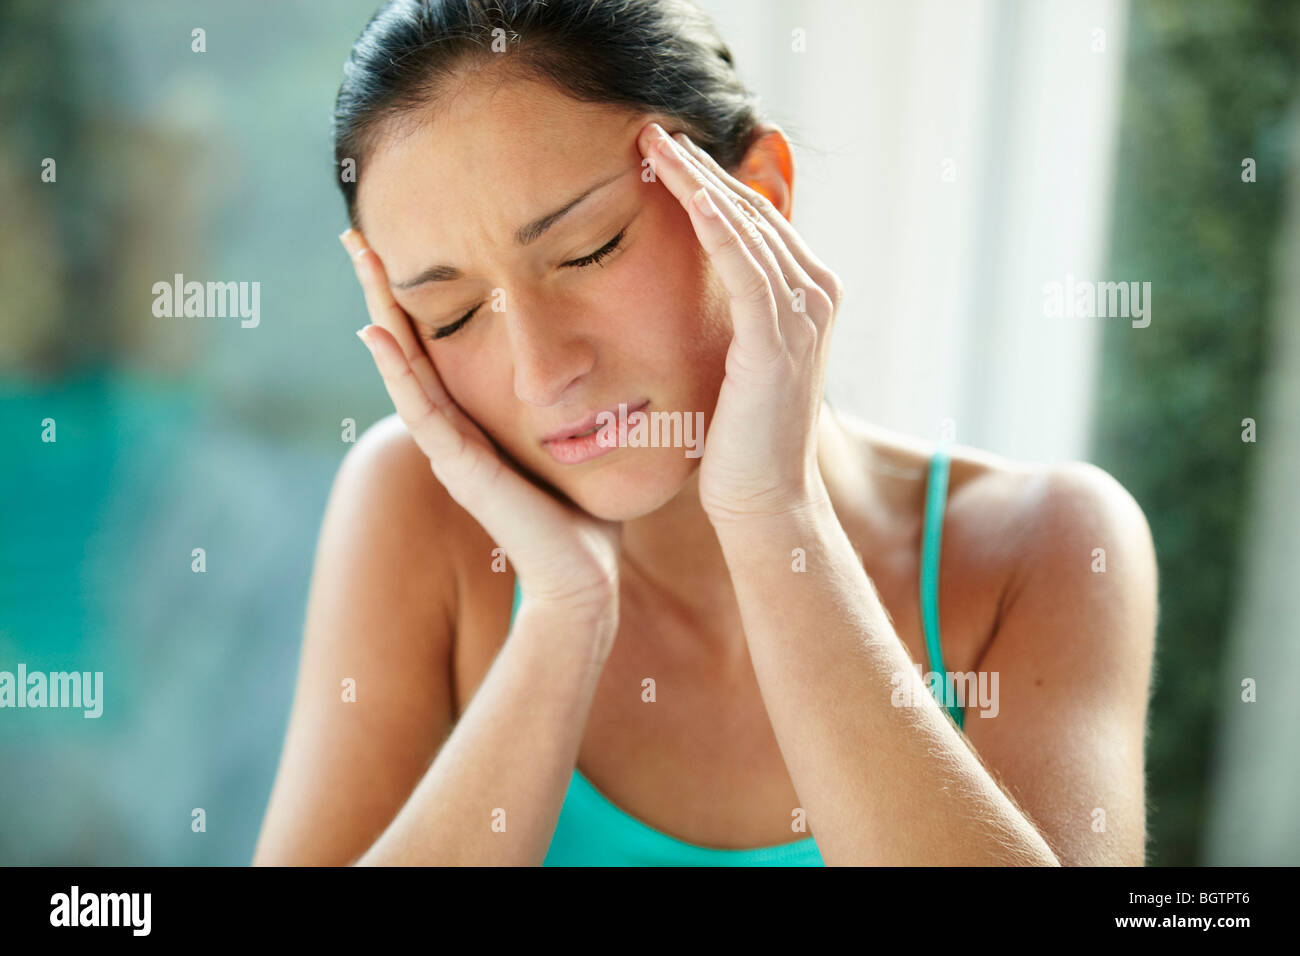 Girl with headache - Stock Image